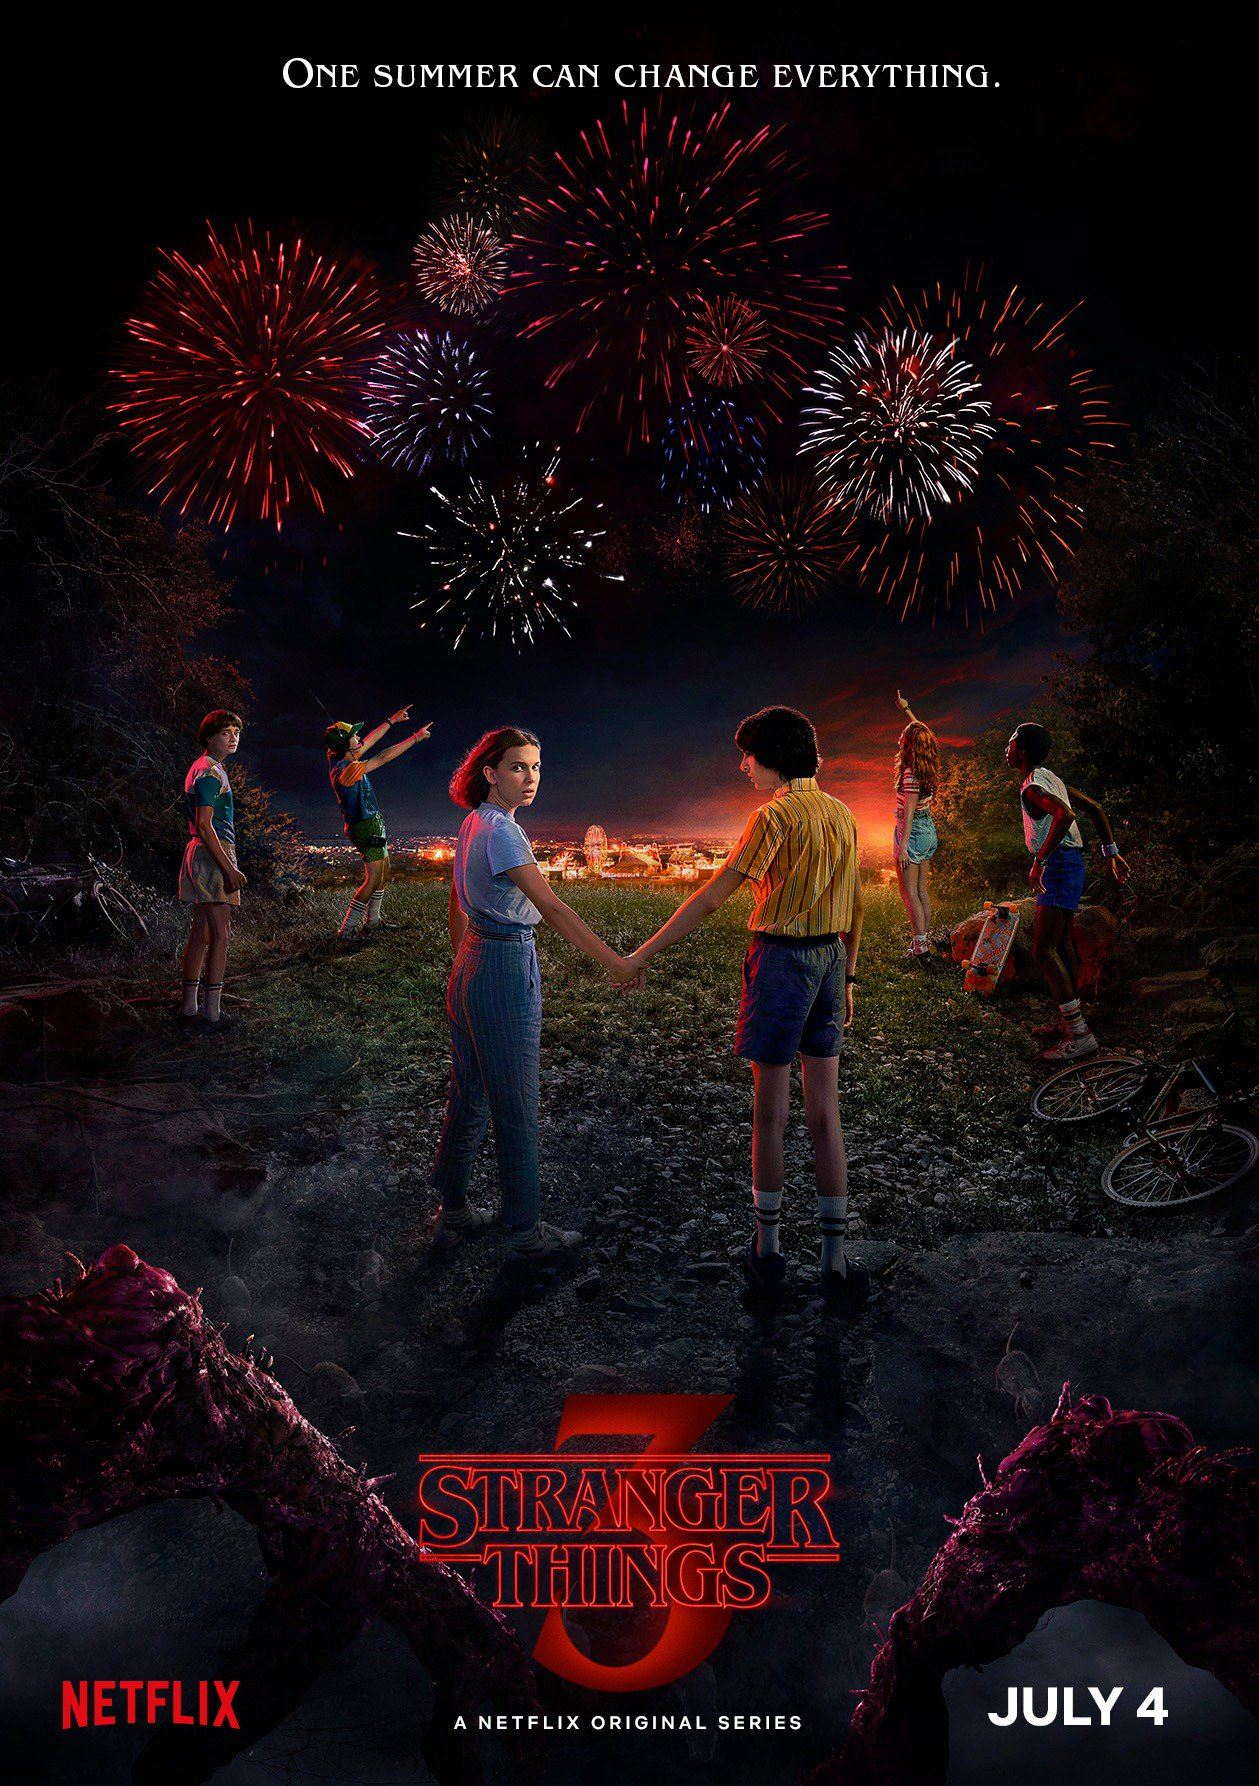 stranger things 3 poster Stranger Things 3